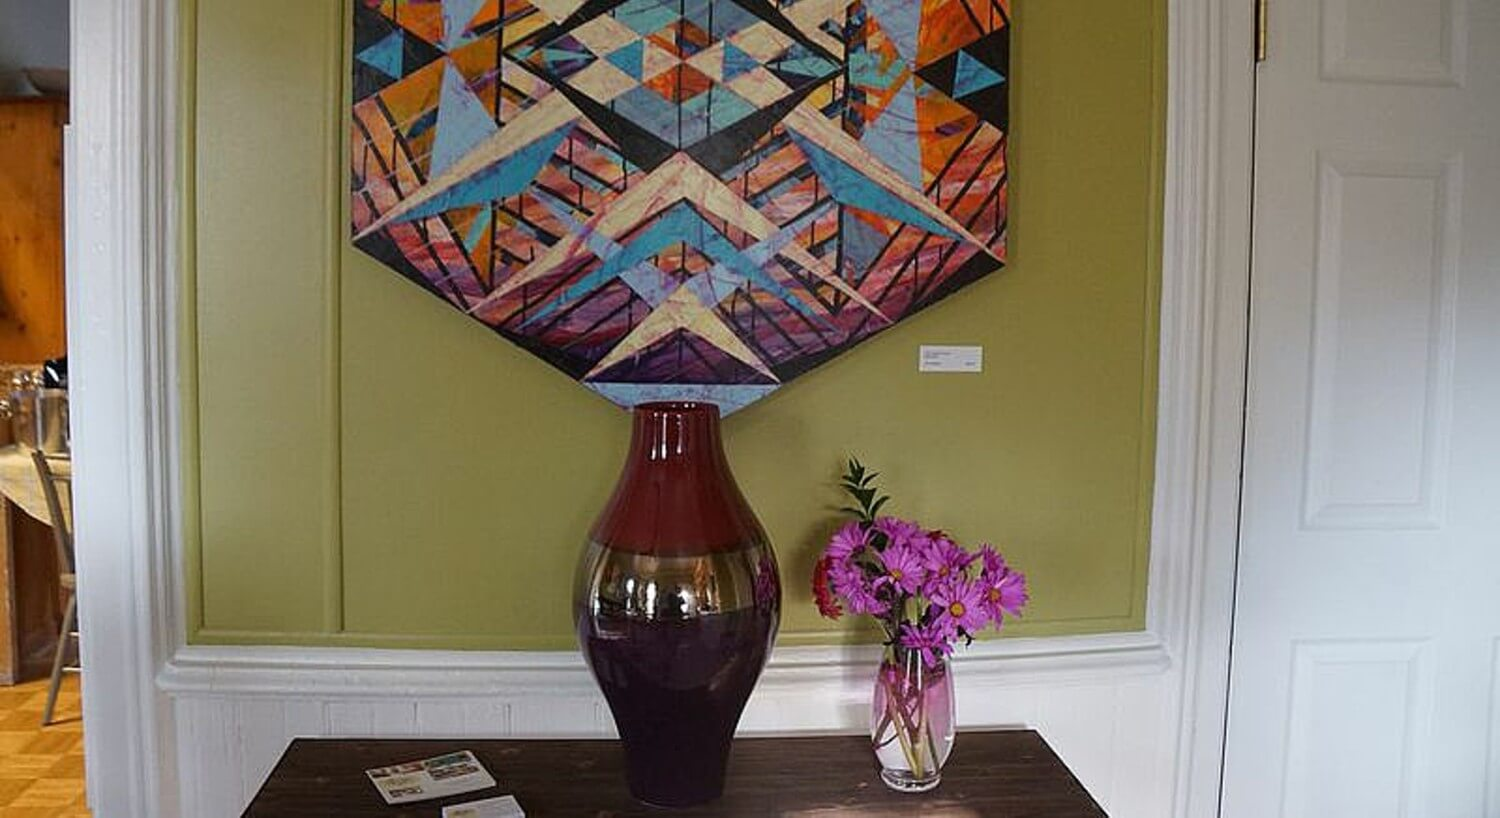 Decorative vase on wooden table under a modern art piece.